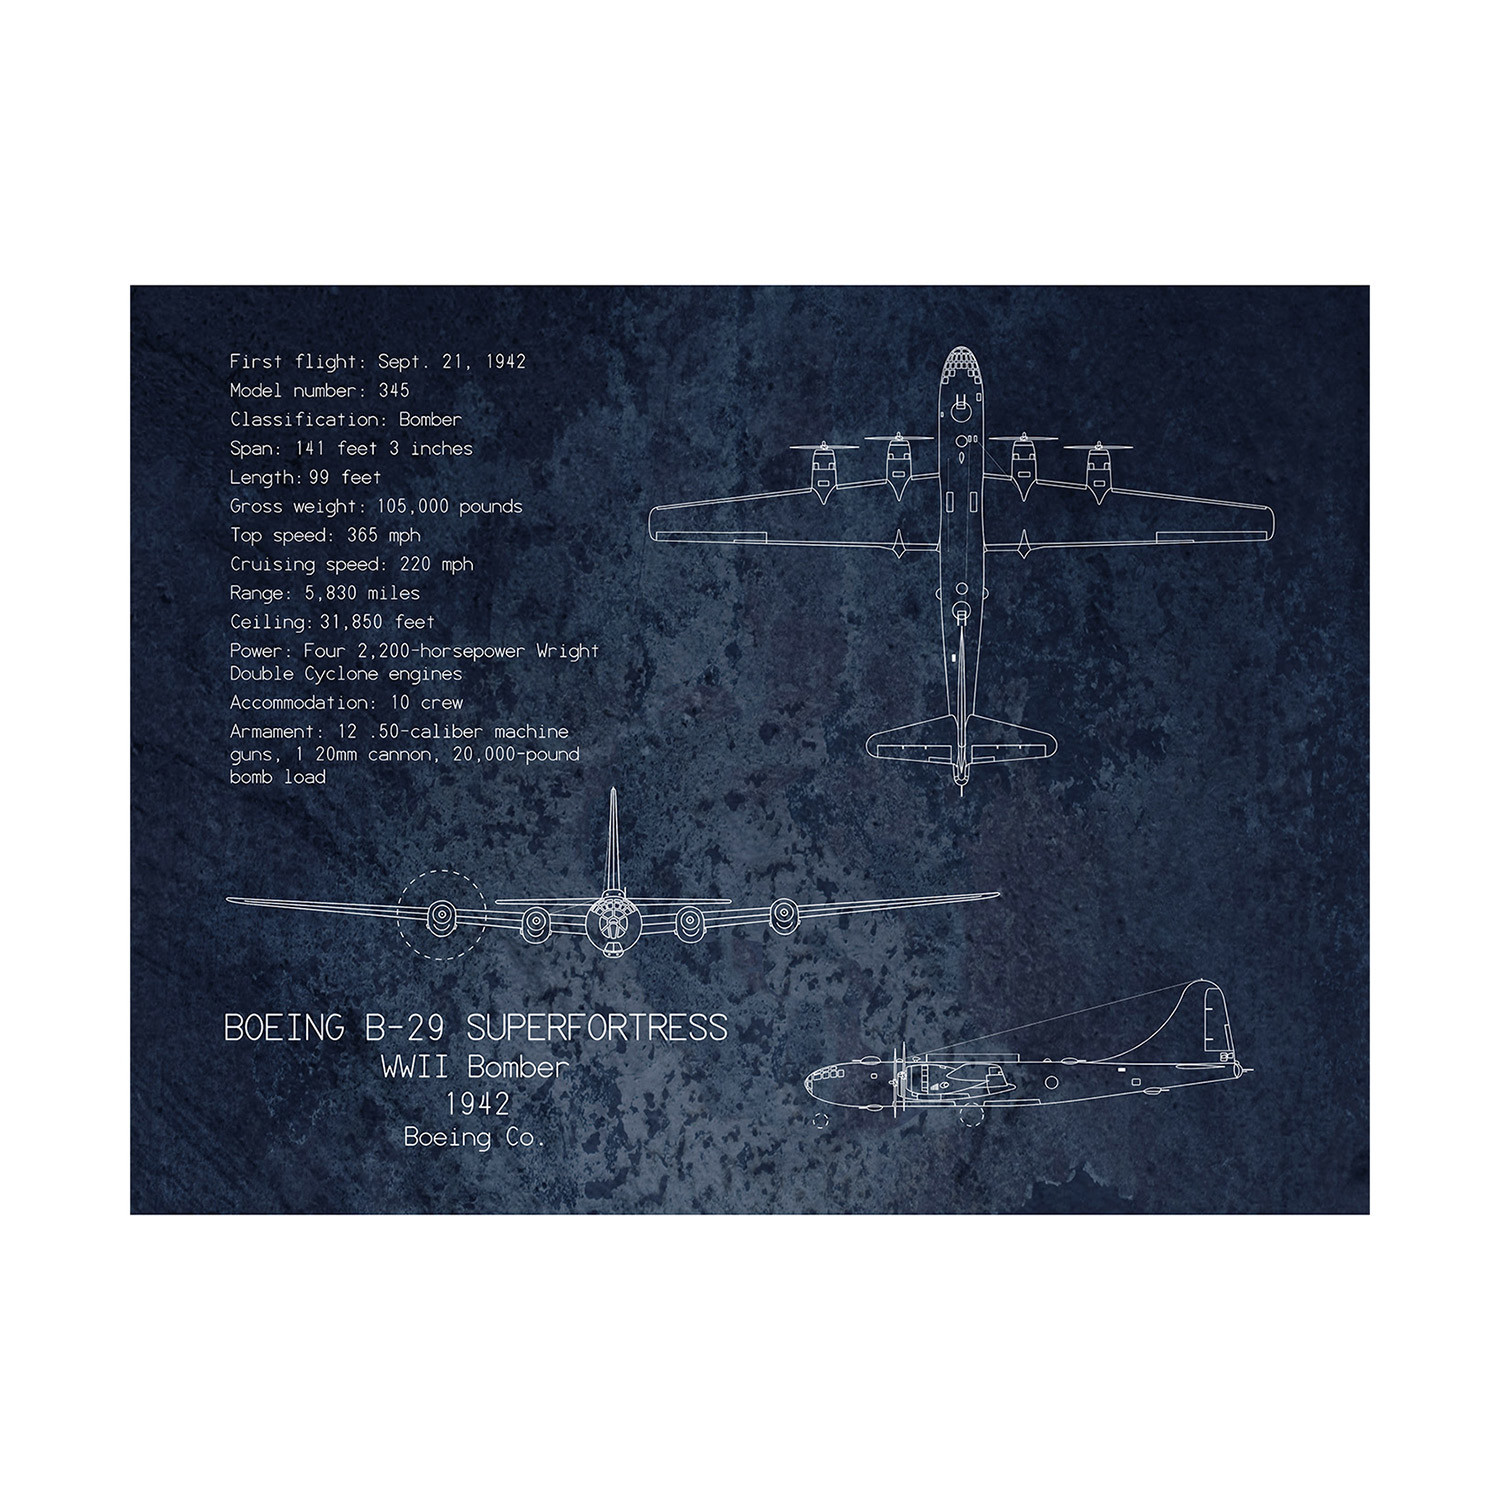 B 29 superfortress blueprint scarlet blvd touch of modern b 29 superfortress blueprint malvernweather Image collections